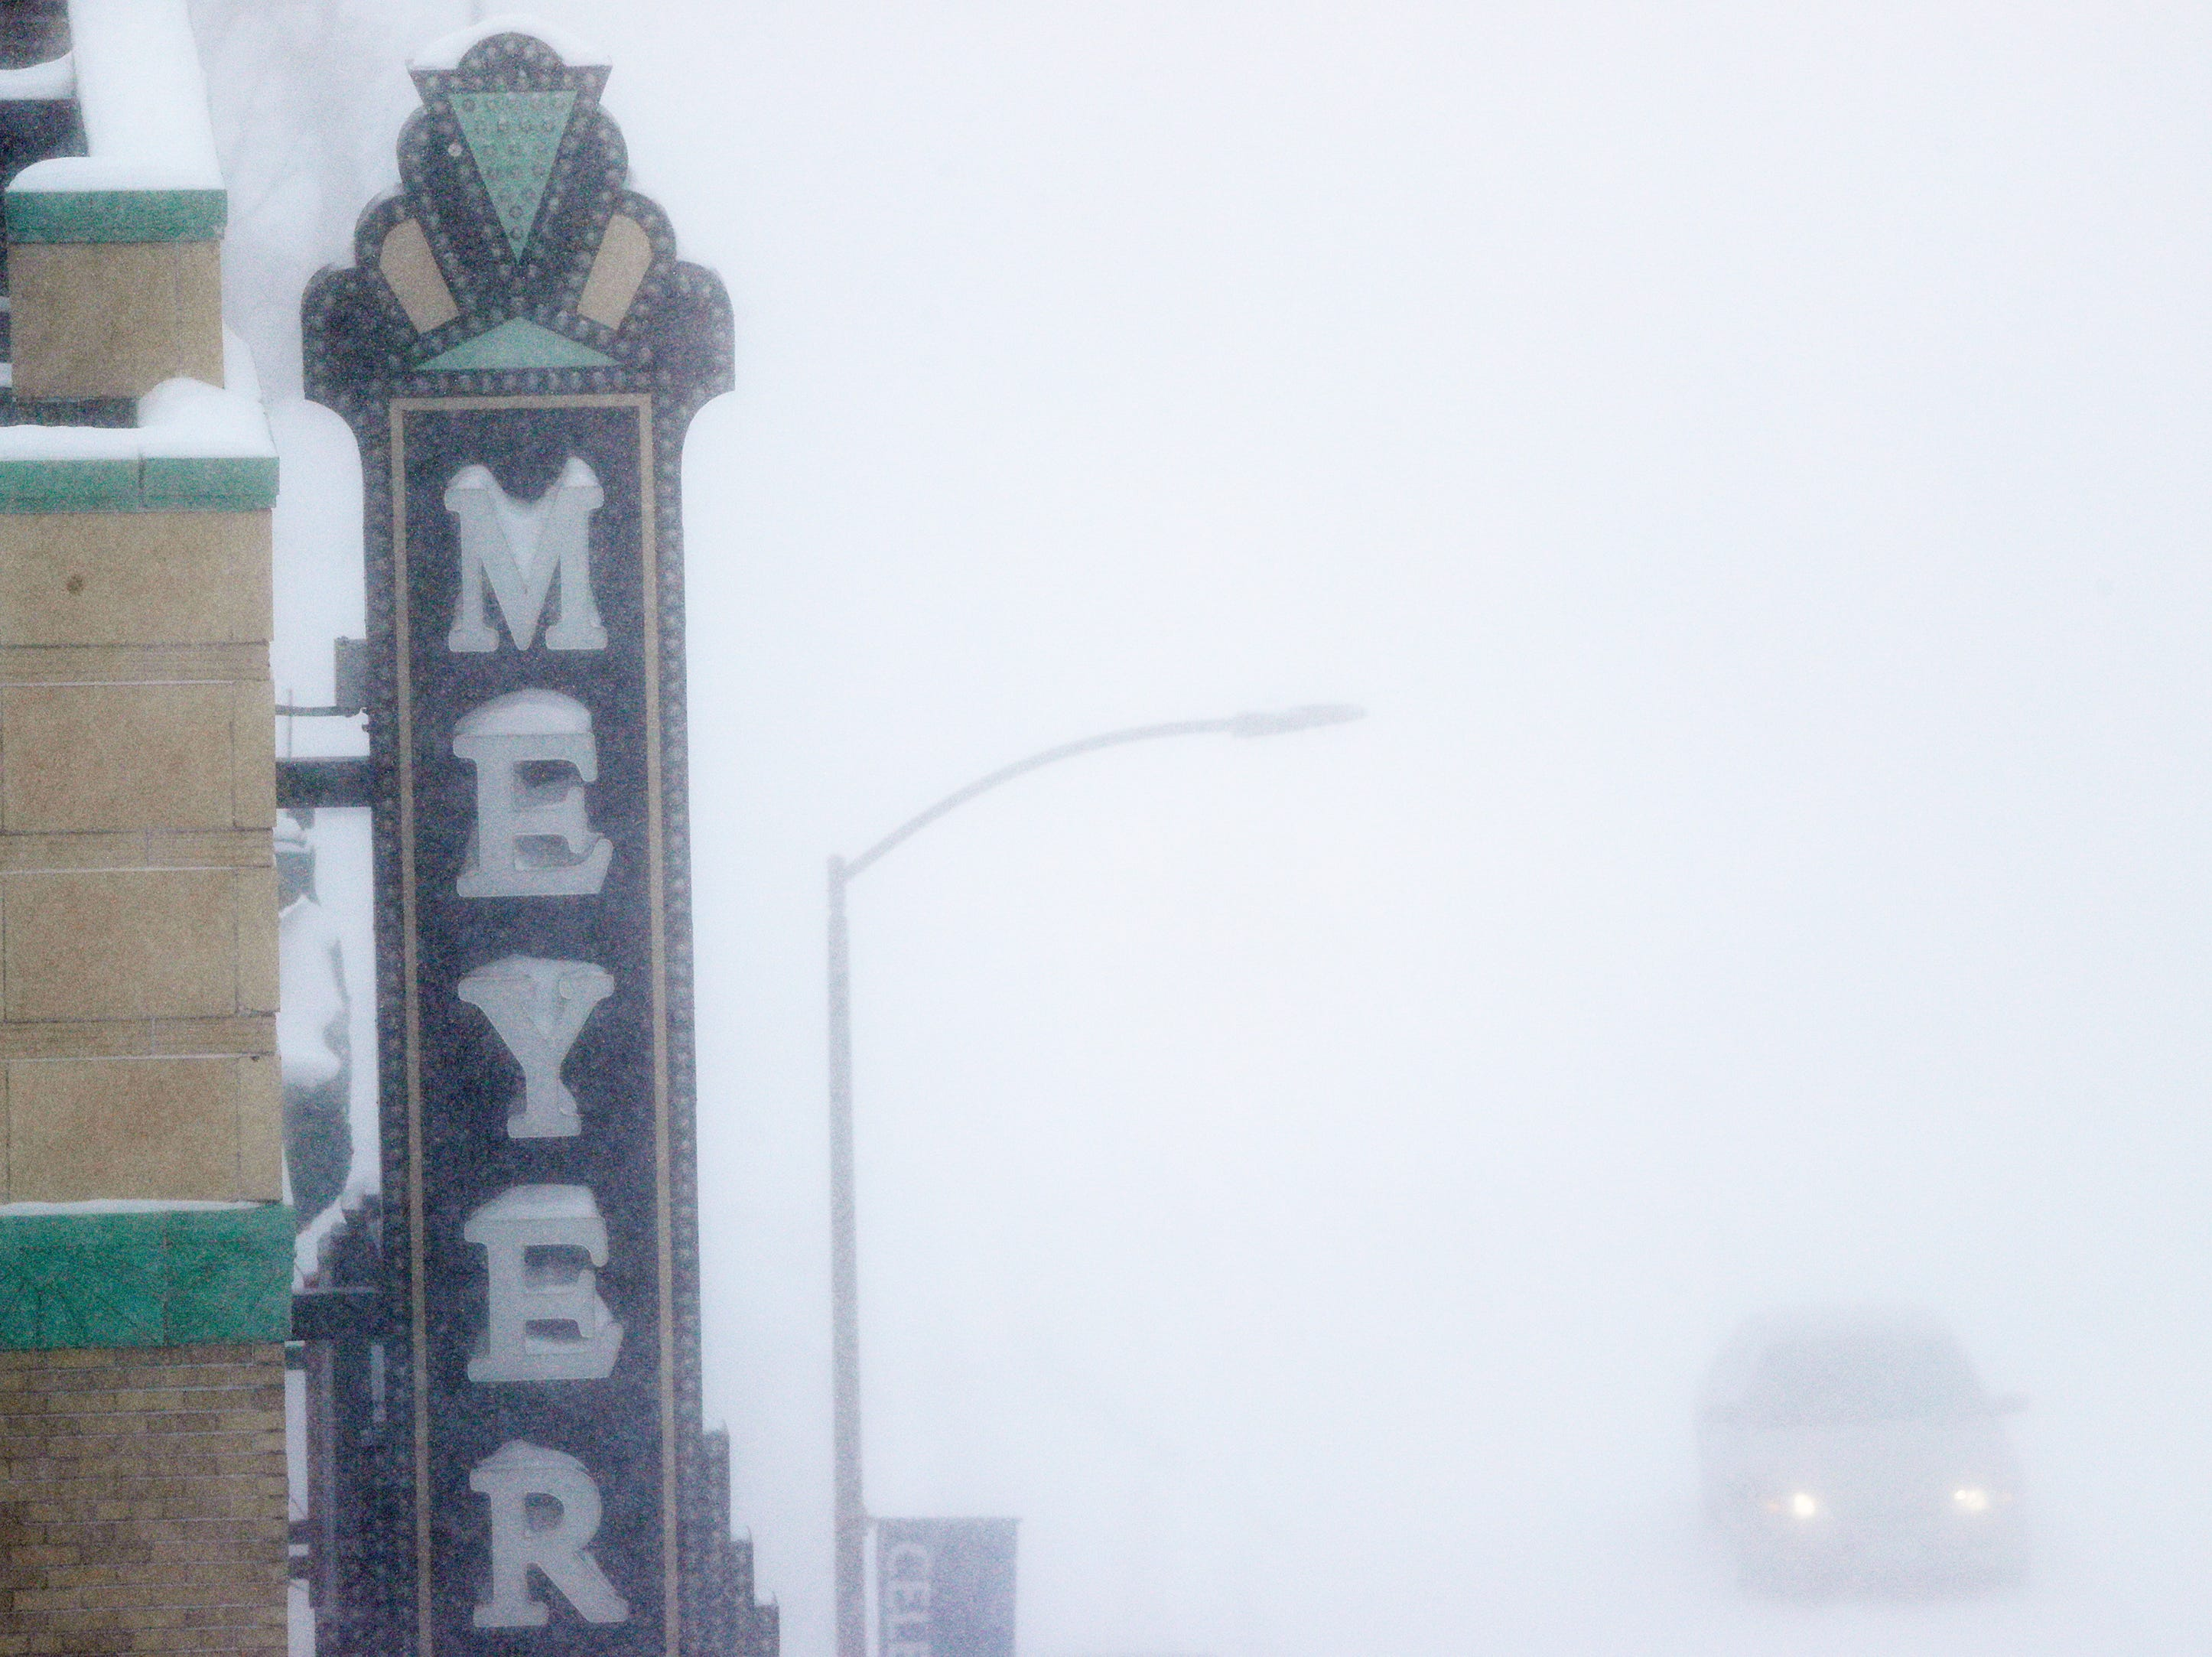 The Meyer theater sign collects snow during a snowstorm on Monday, Jan. 28, 2019 in Green Bay, Wis.